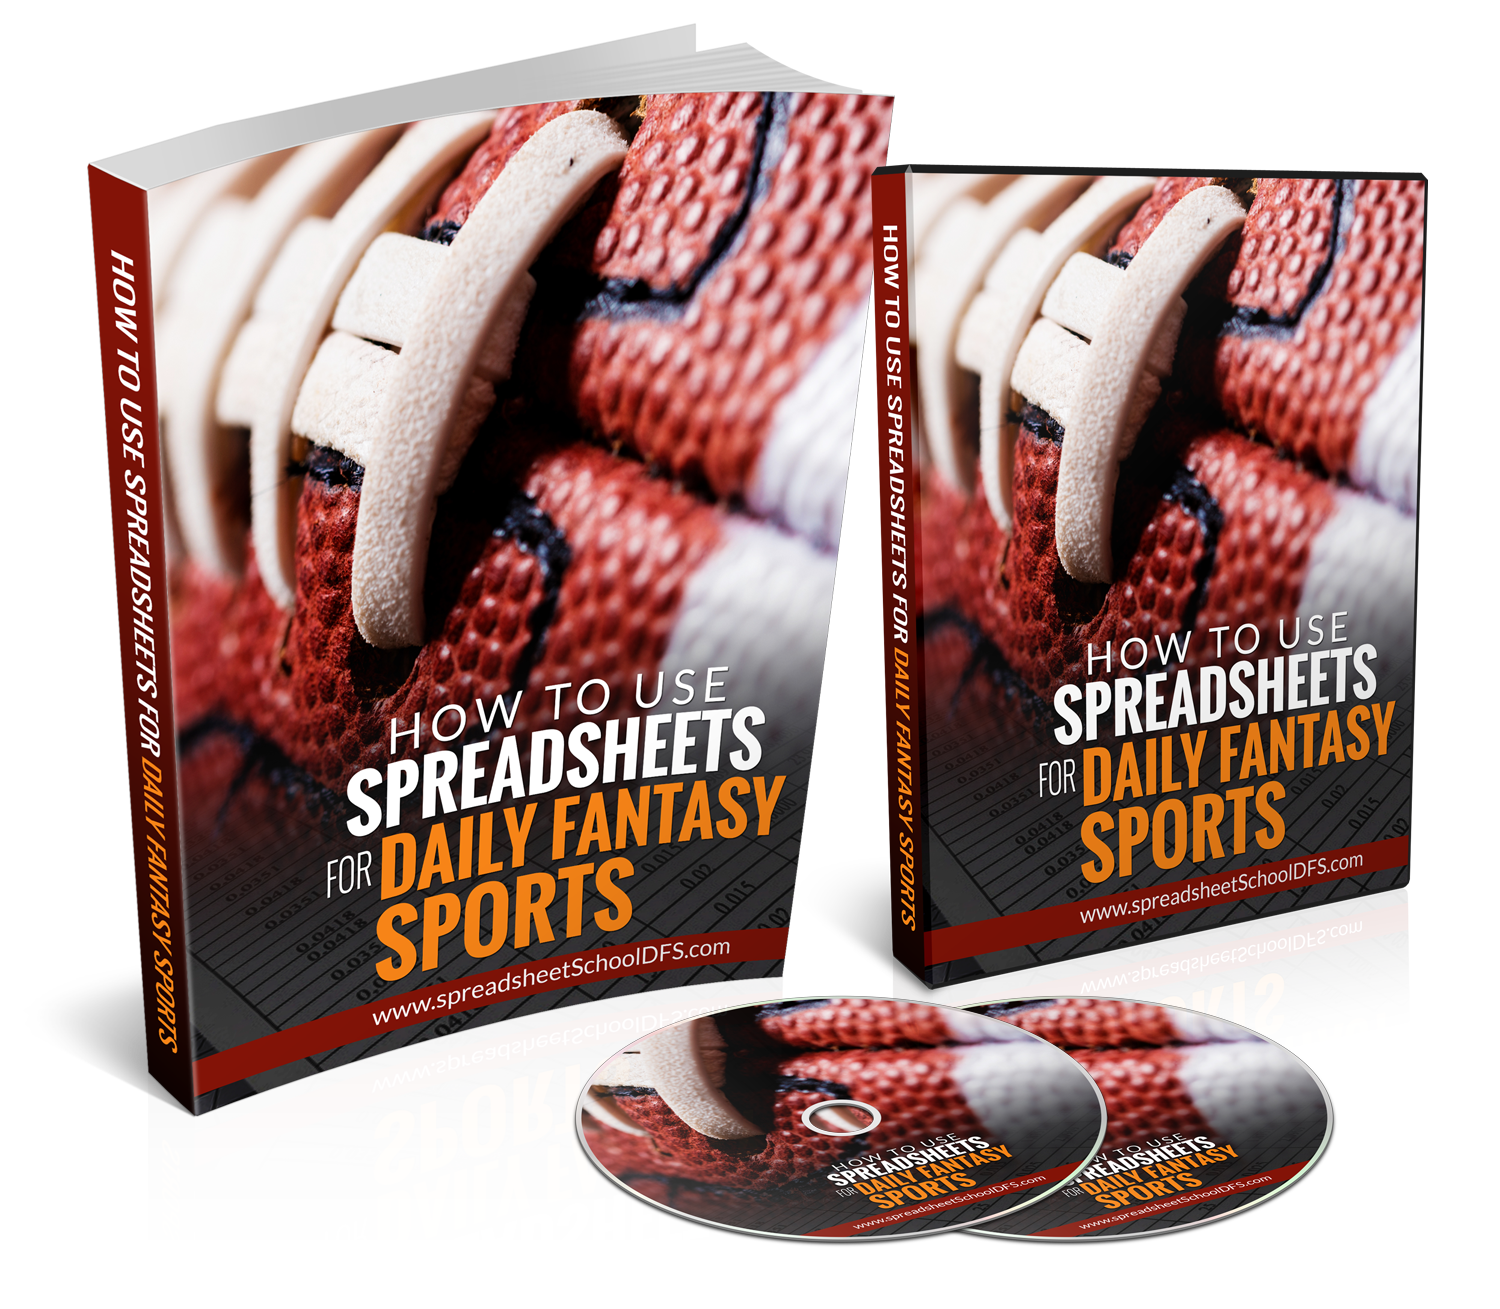 spreadsheet school for daily fantasy sports spreadsheet school for